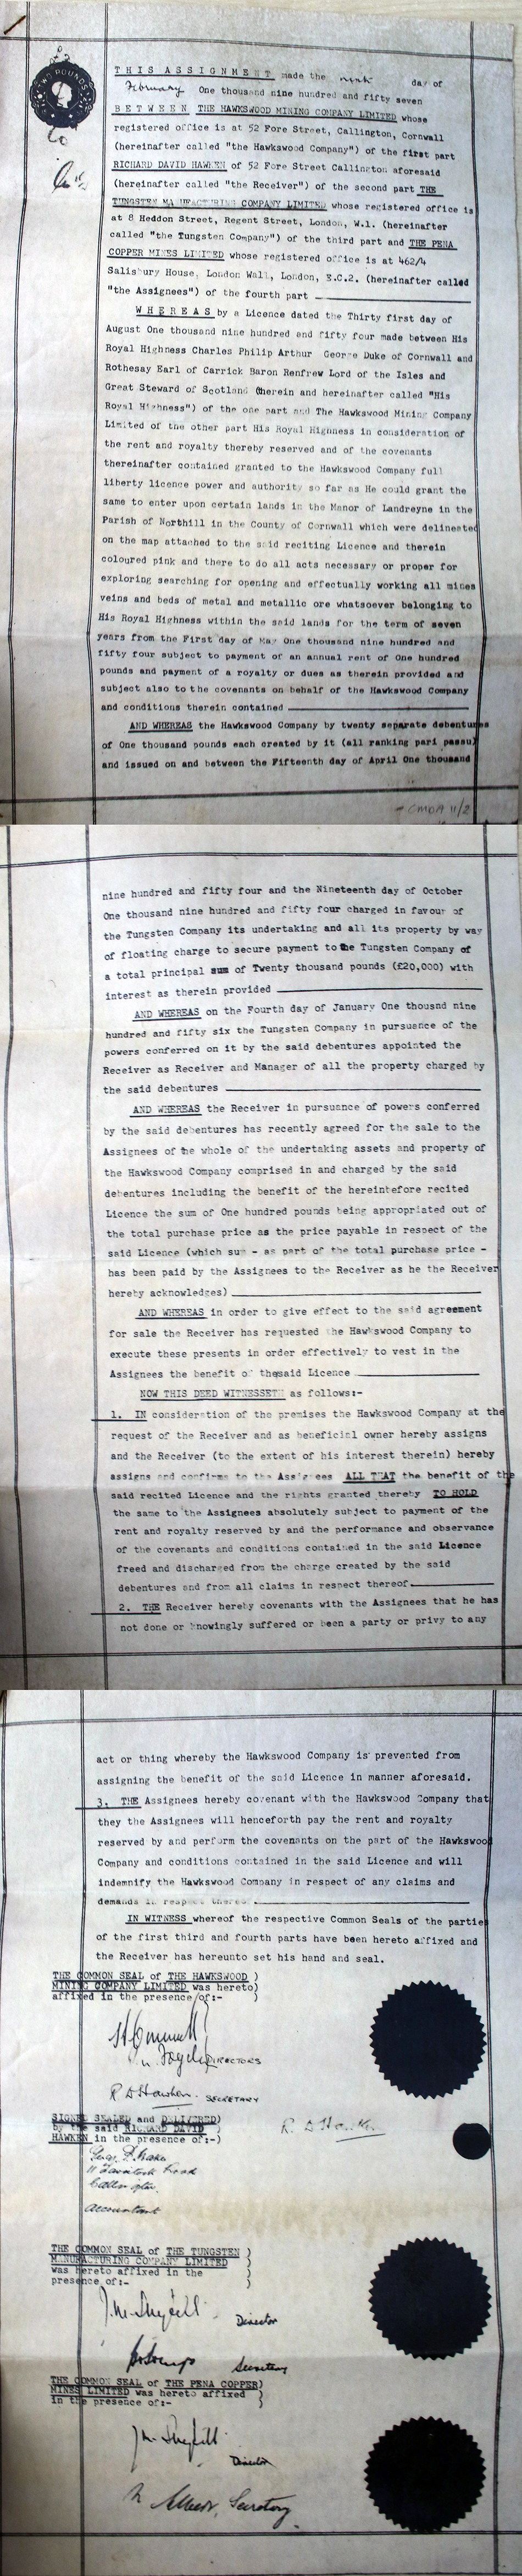 1957 Hawkswood Mine Agreement